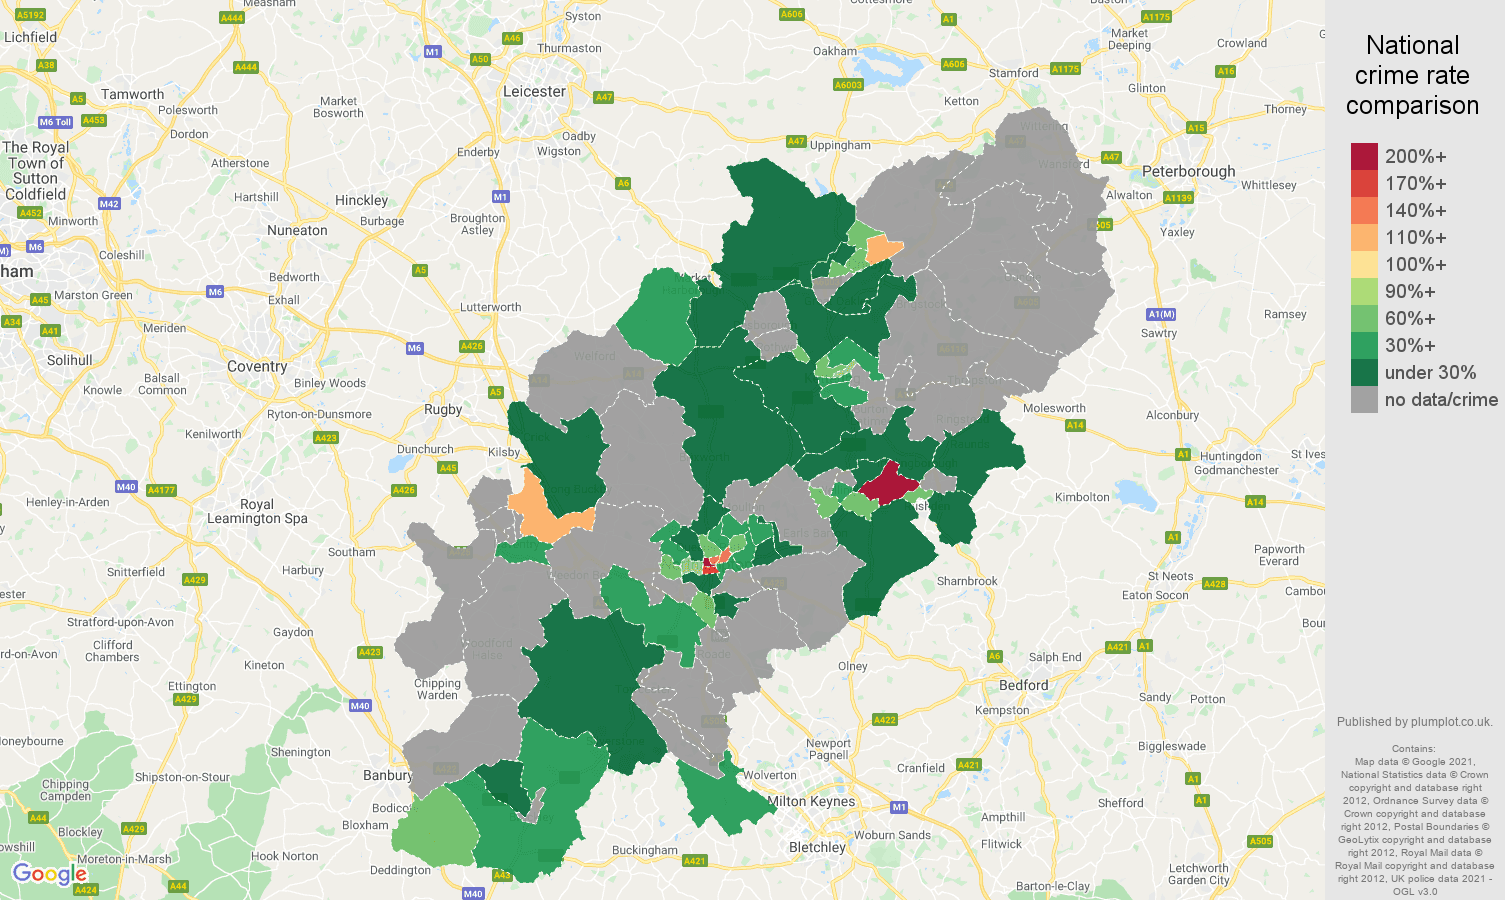 Northamptonshire theft from the person crime rate comparison map